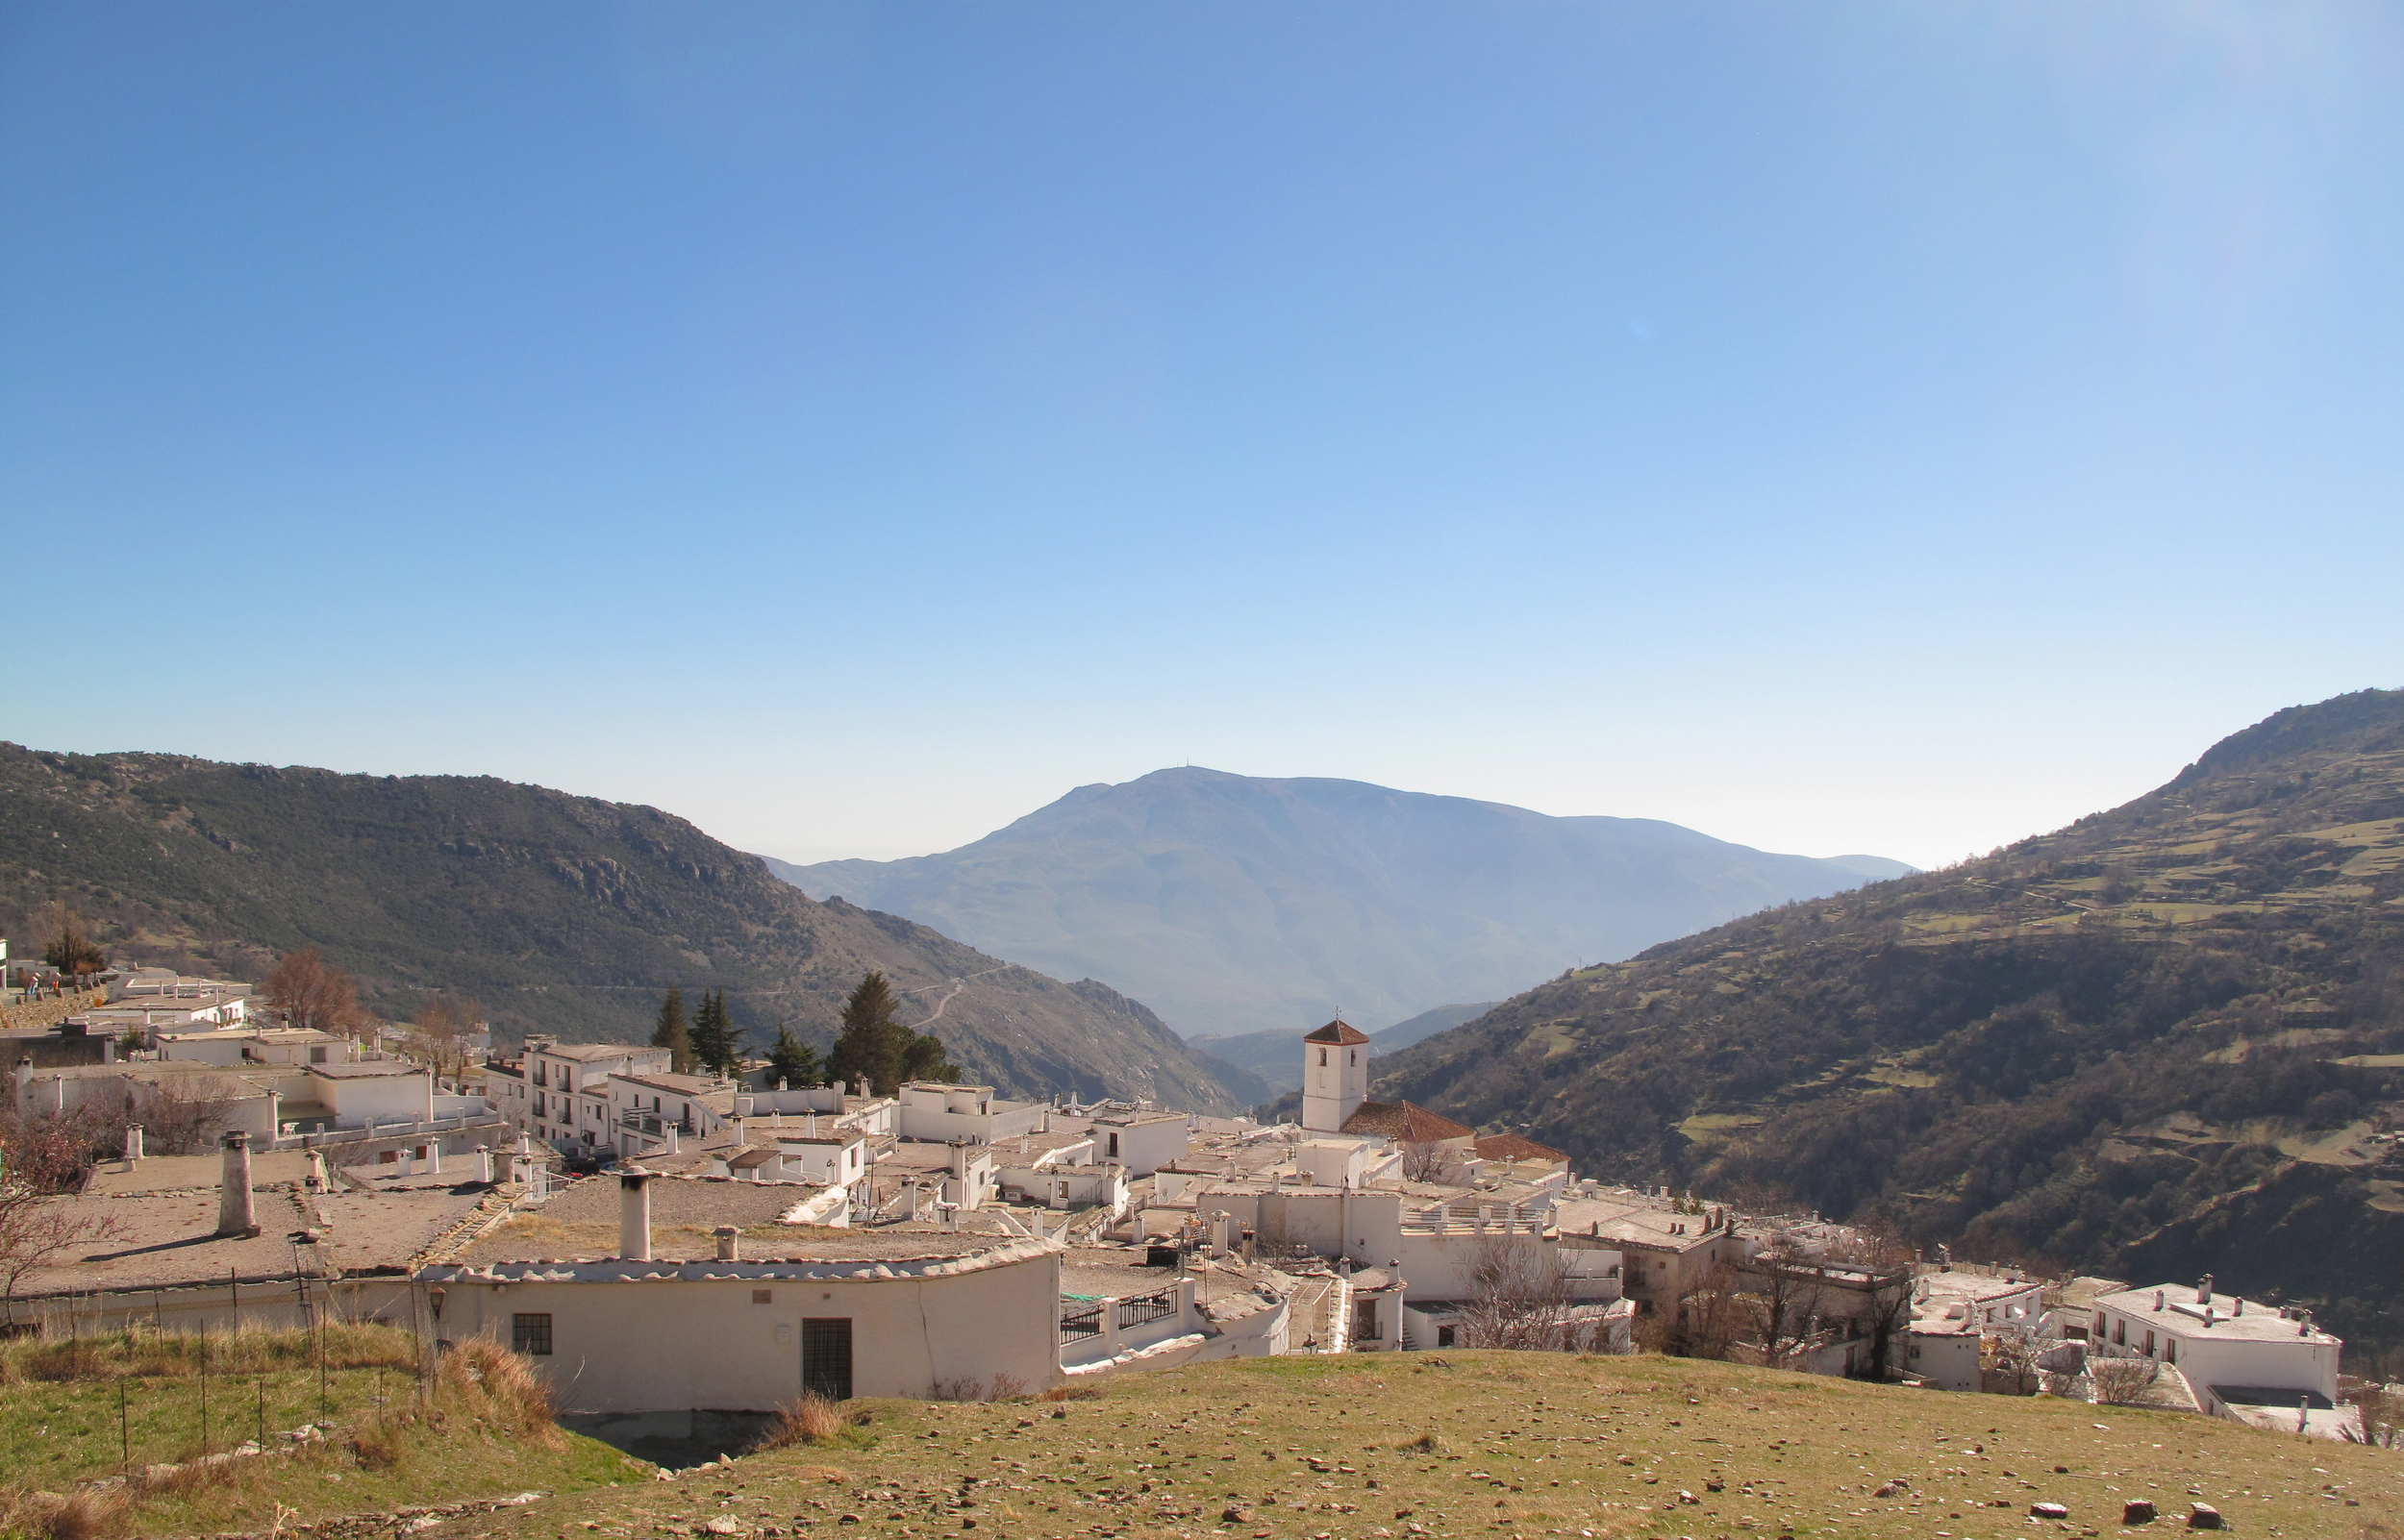 Hilltop towns in the mountains of Andulacia, Spain